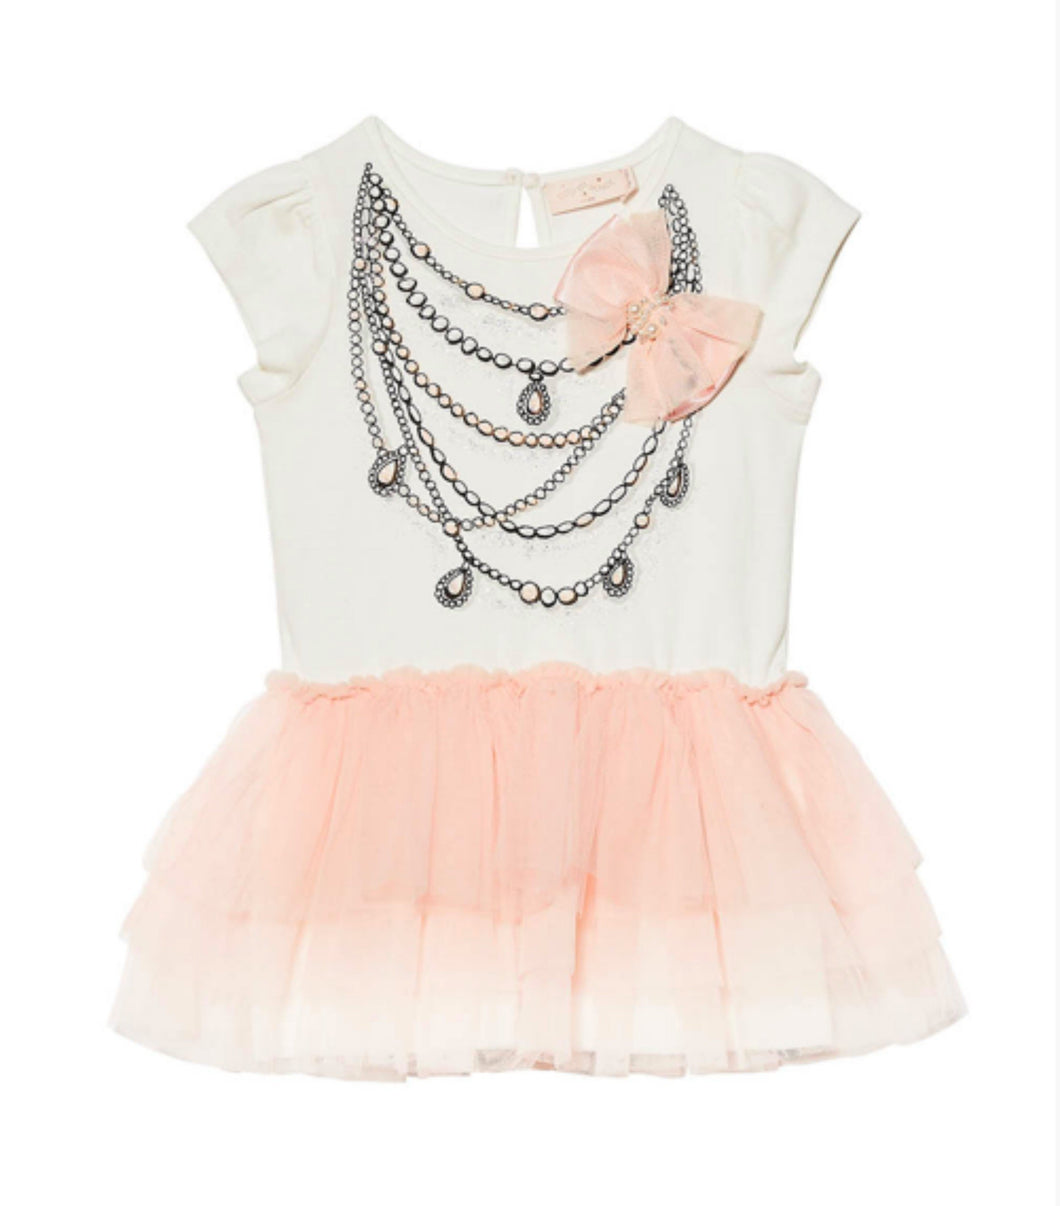 Tutu Du Monde Bebe Perla Dress | Honeypiekids